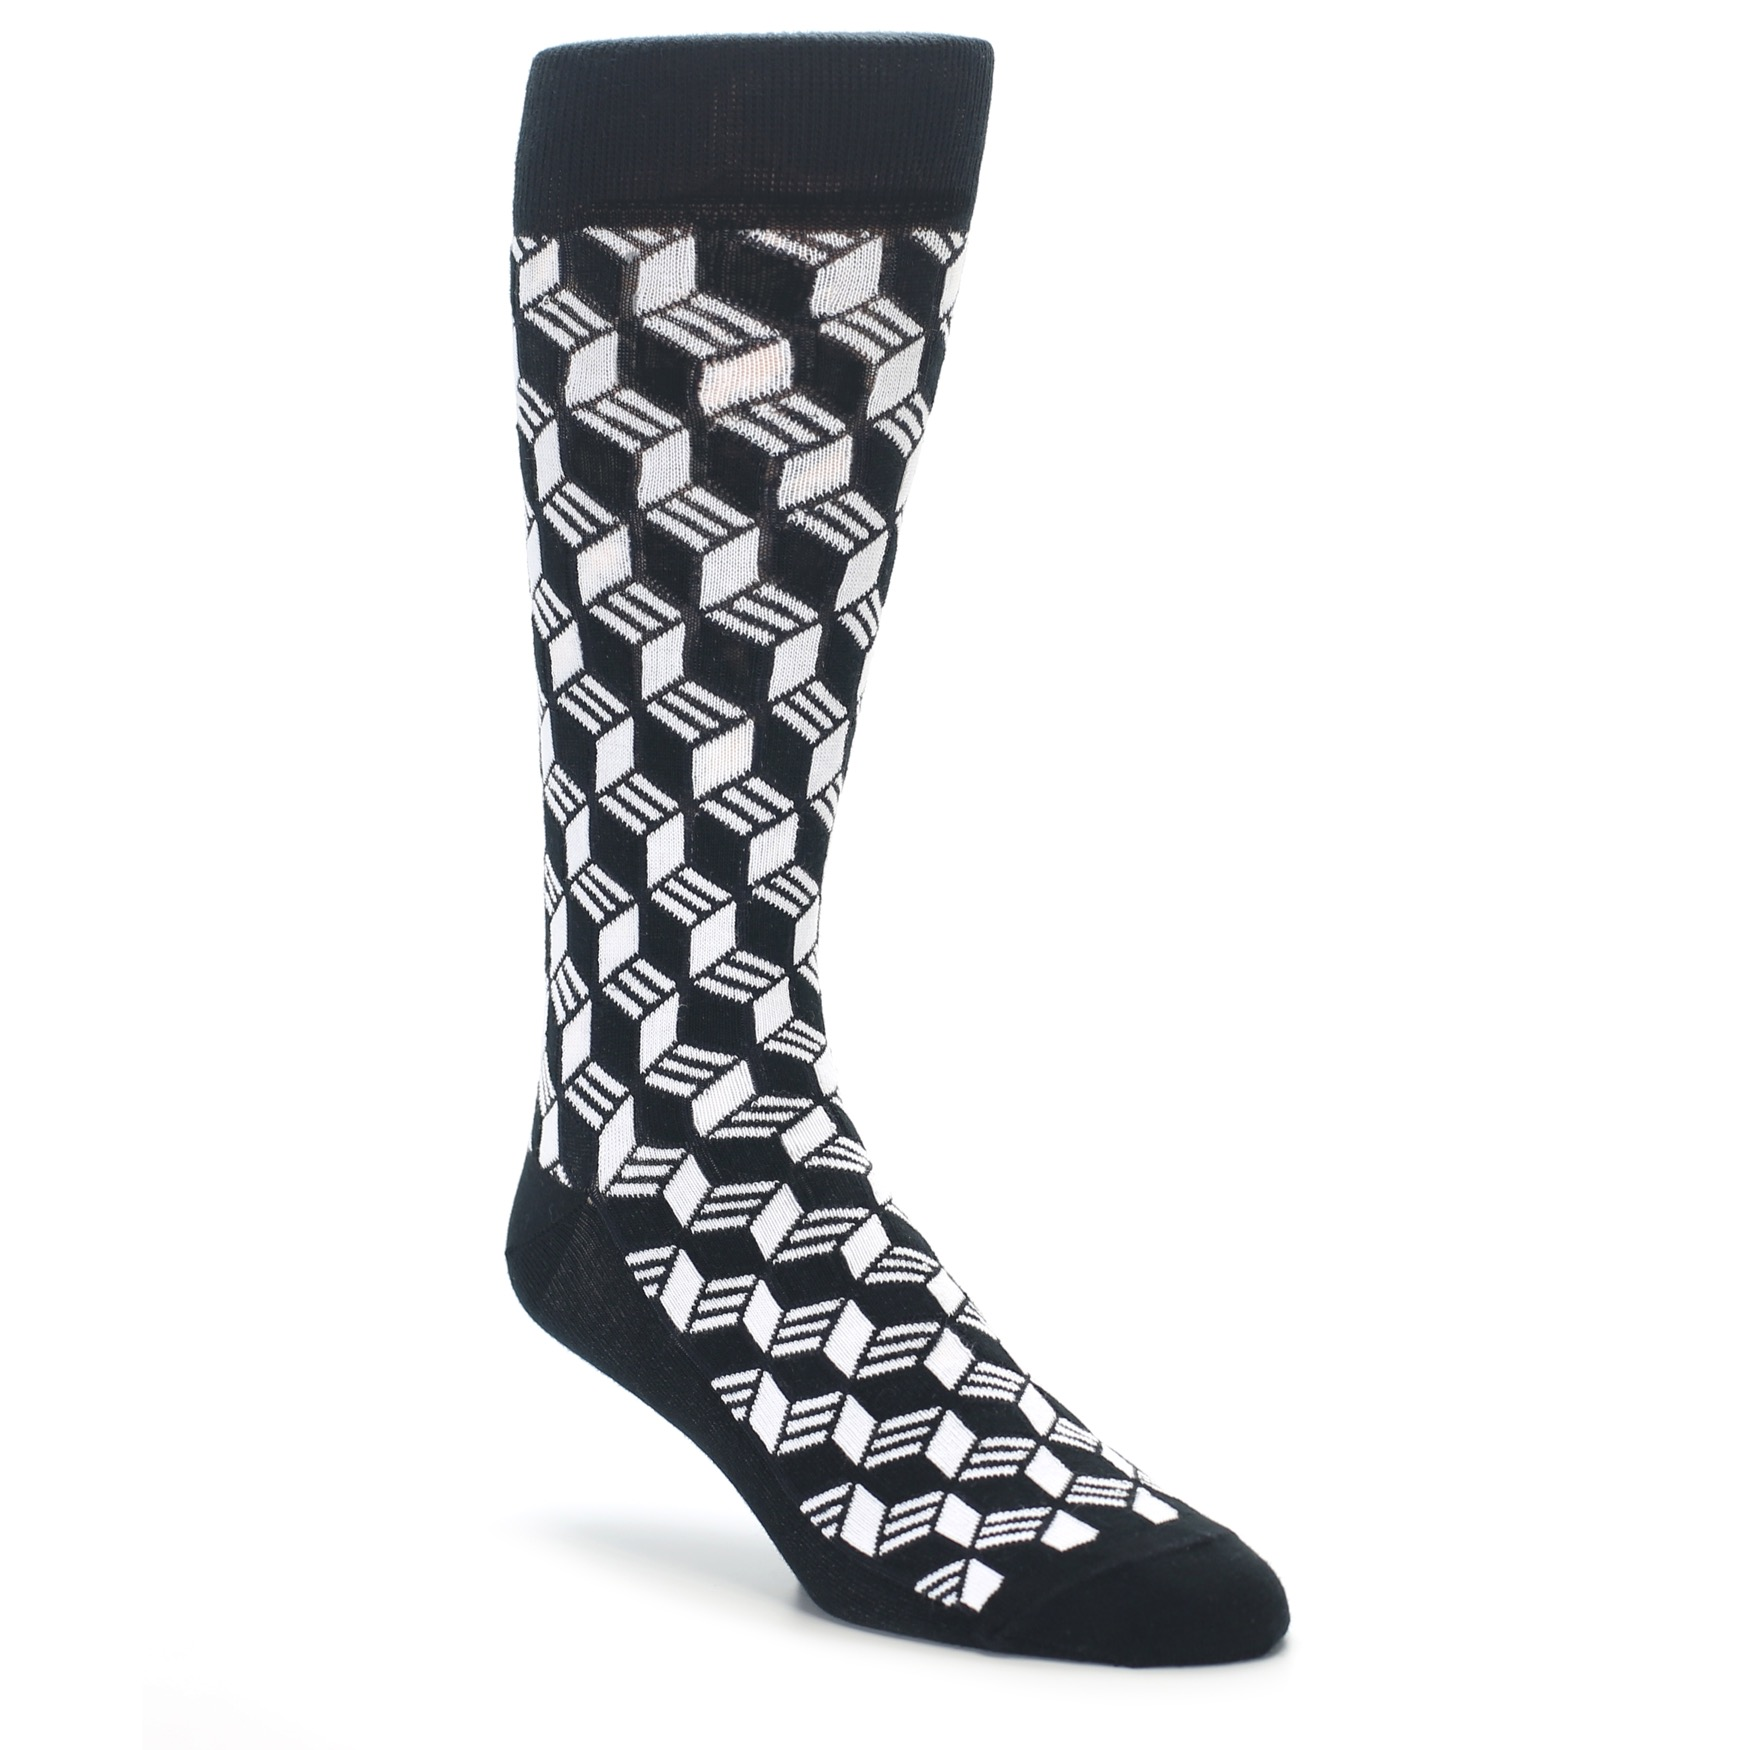 Pattern Socks Magnificent Design Inspiration